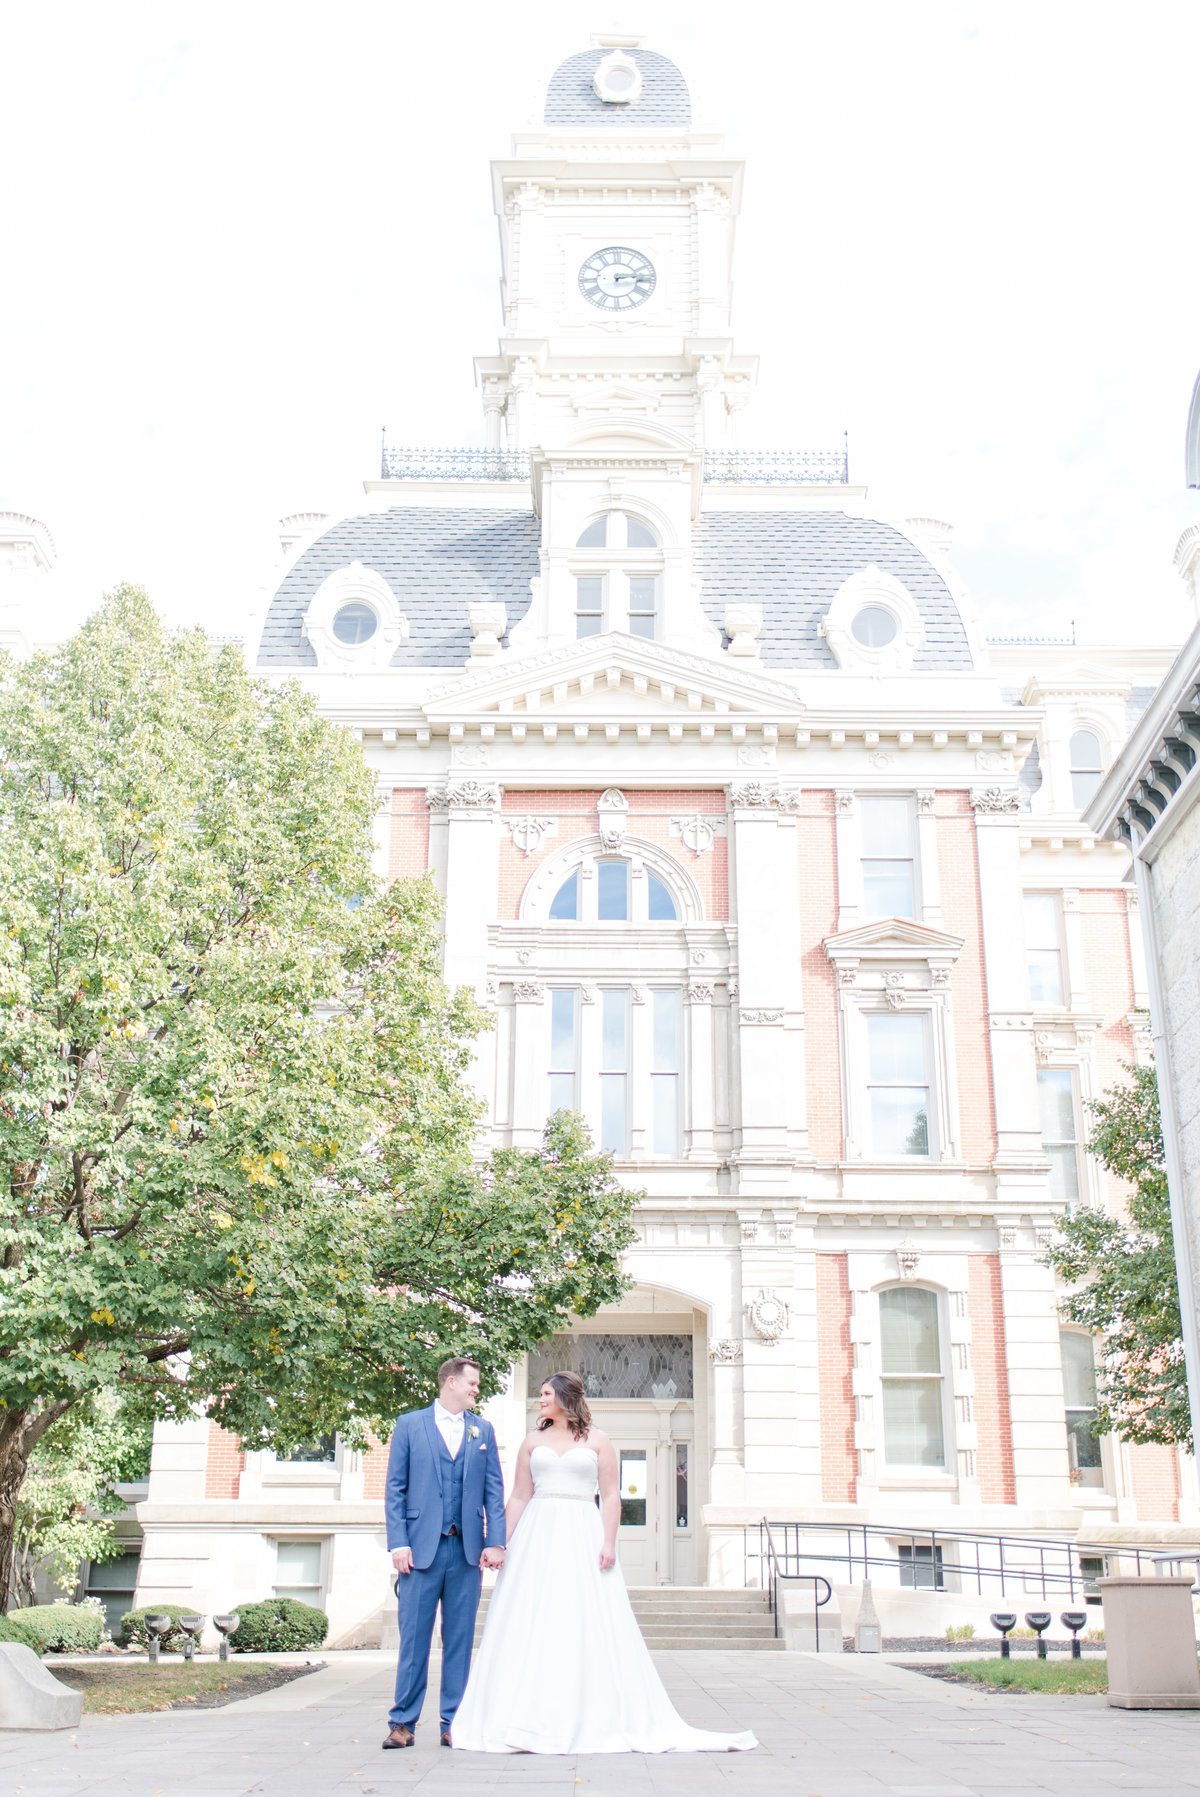 Newlywed Portraits Cait Potter Creative LLC Milltop Potters Bridge Noblesville Square Courthouse Wedding-31